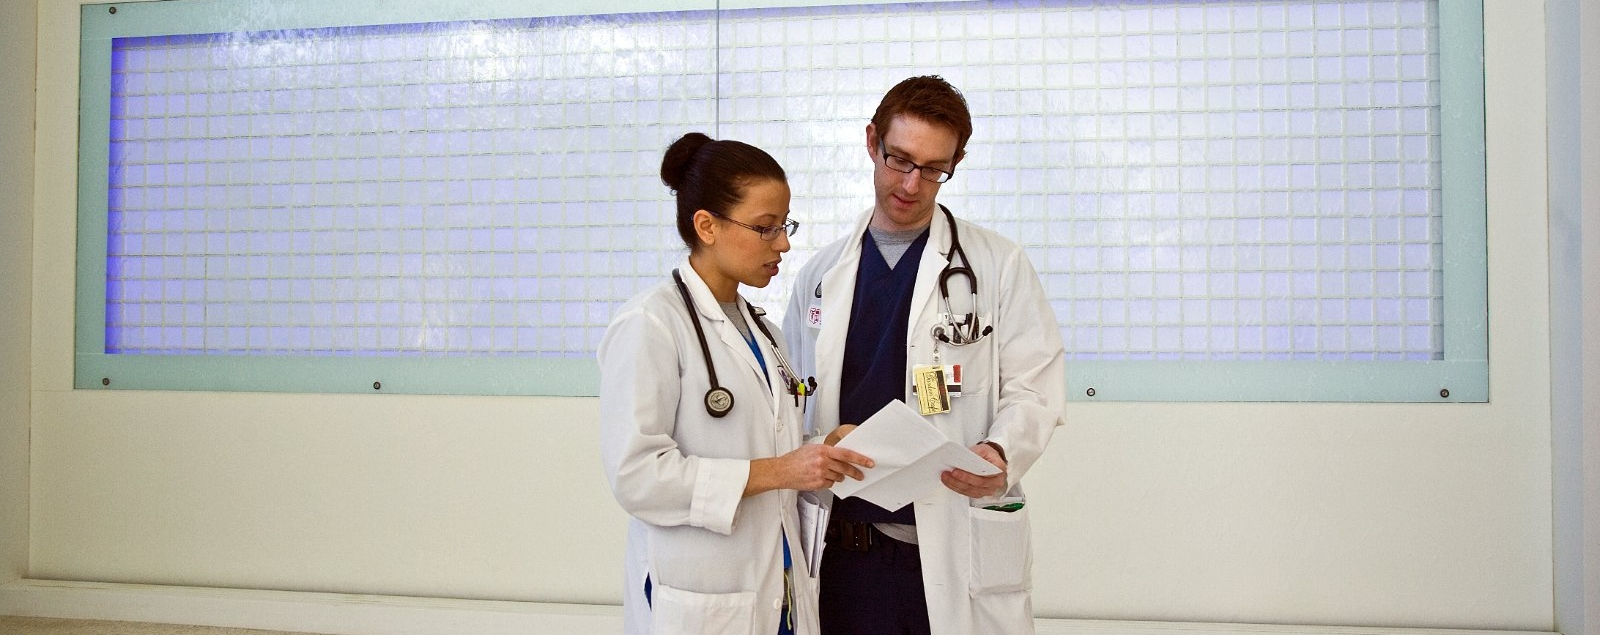 Two doctors standing in a corridor consult together over some paperwork.